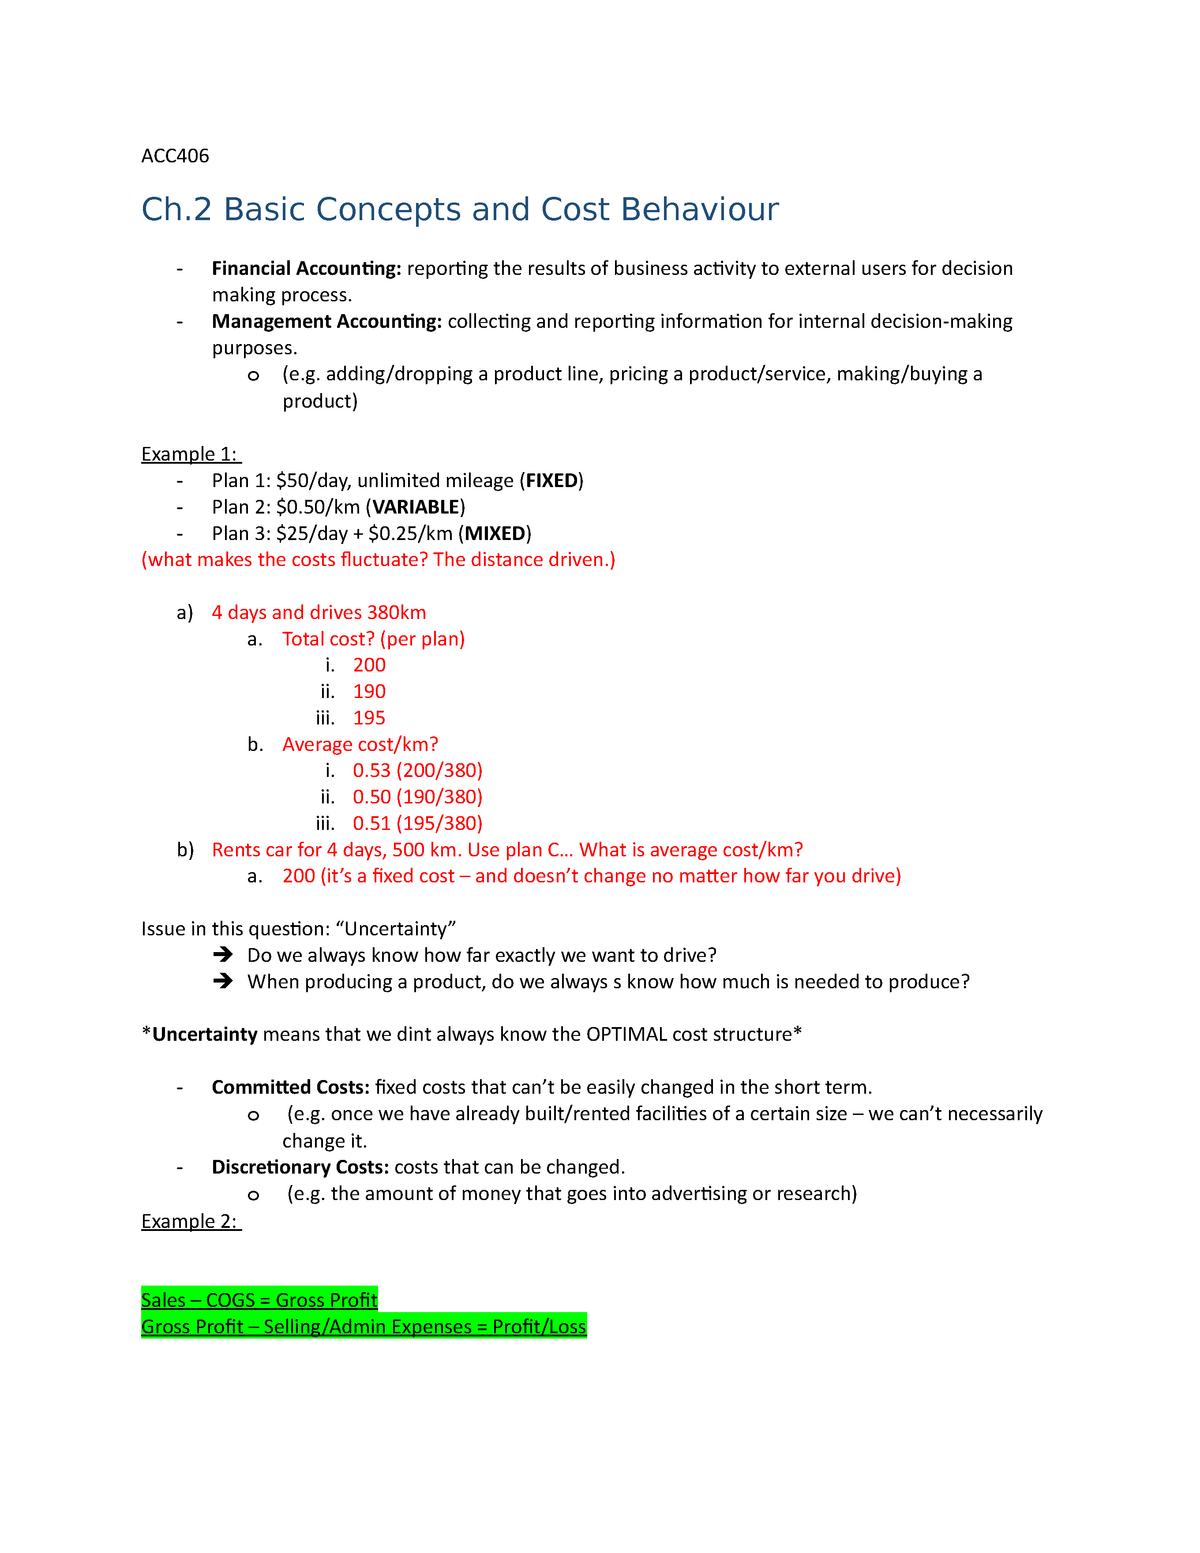 Ch  2 Basic Concepts and Cost Behaviour - ACC 406: Introductory